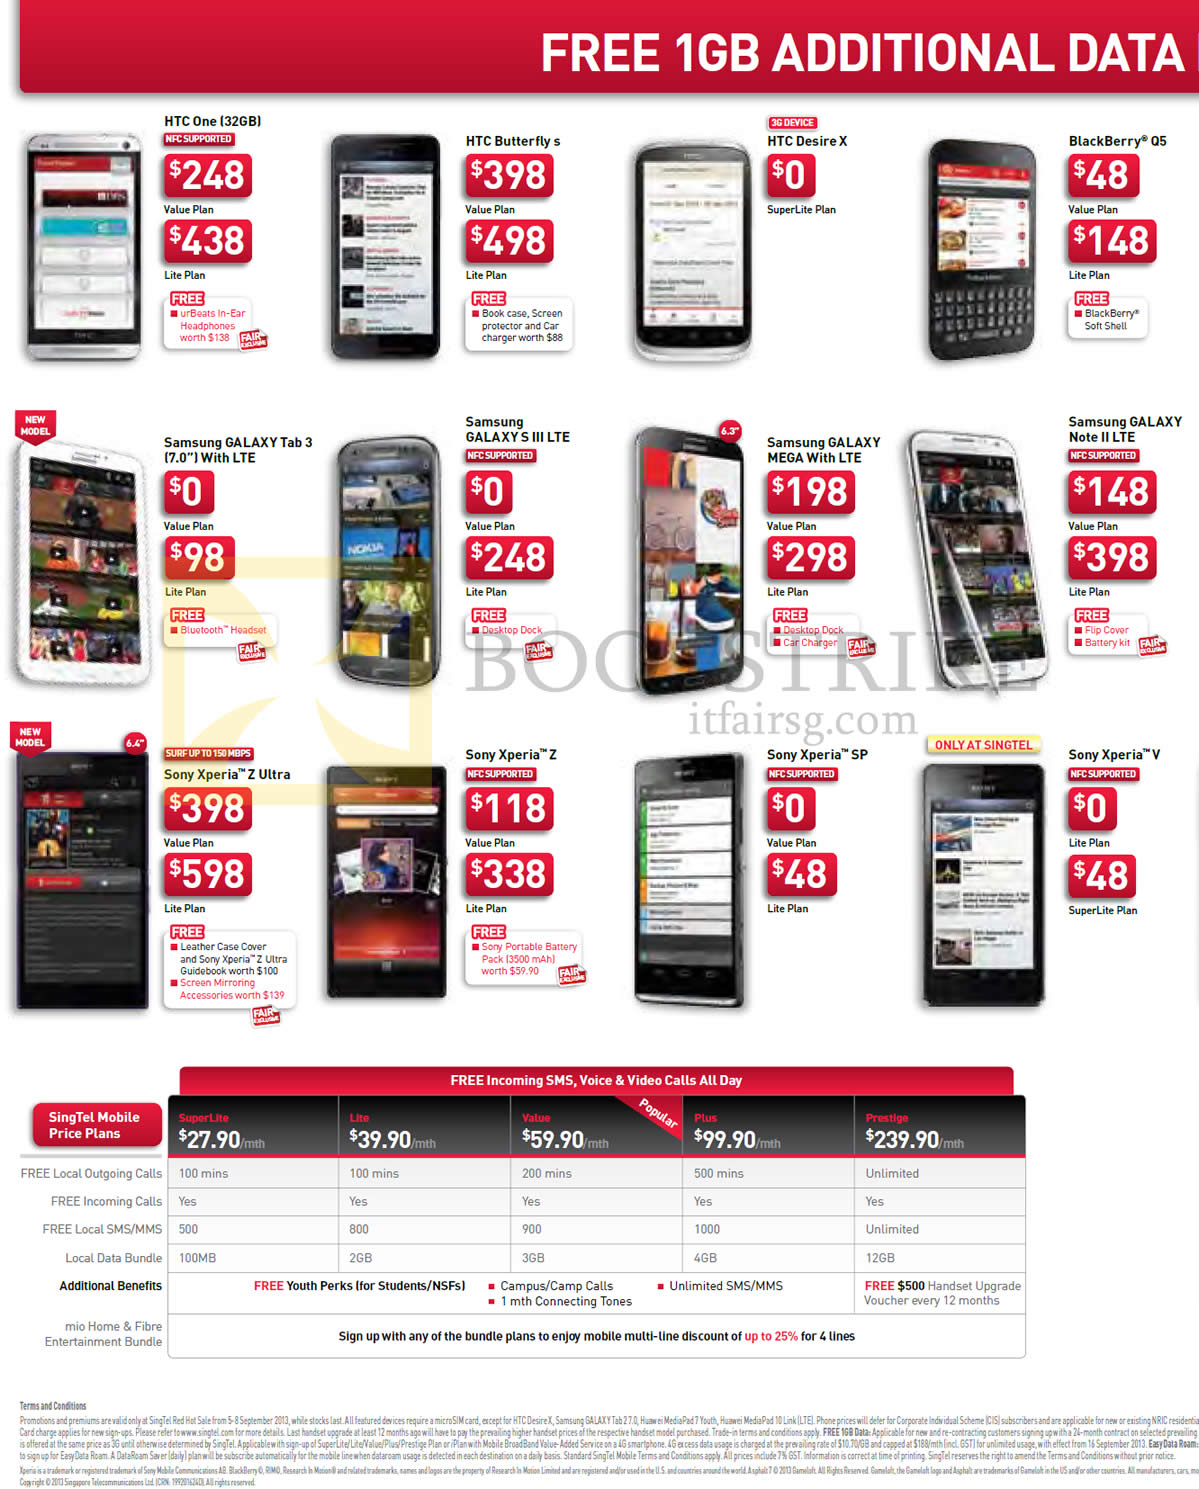 Singtel Mobile Htc One Butterfly S Desire X Blackberry Q5 Samsung Galaxy Tab 3 V Comex 2013 Price List Image Brochure Of